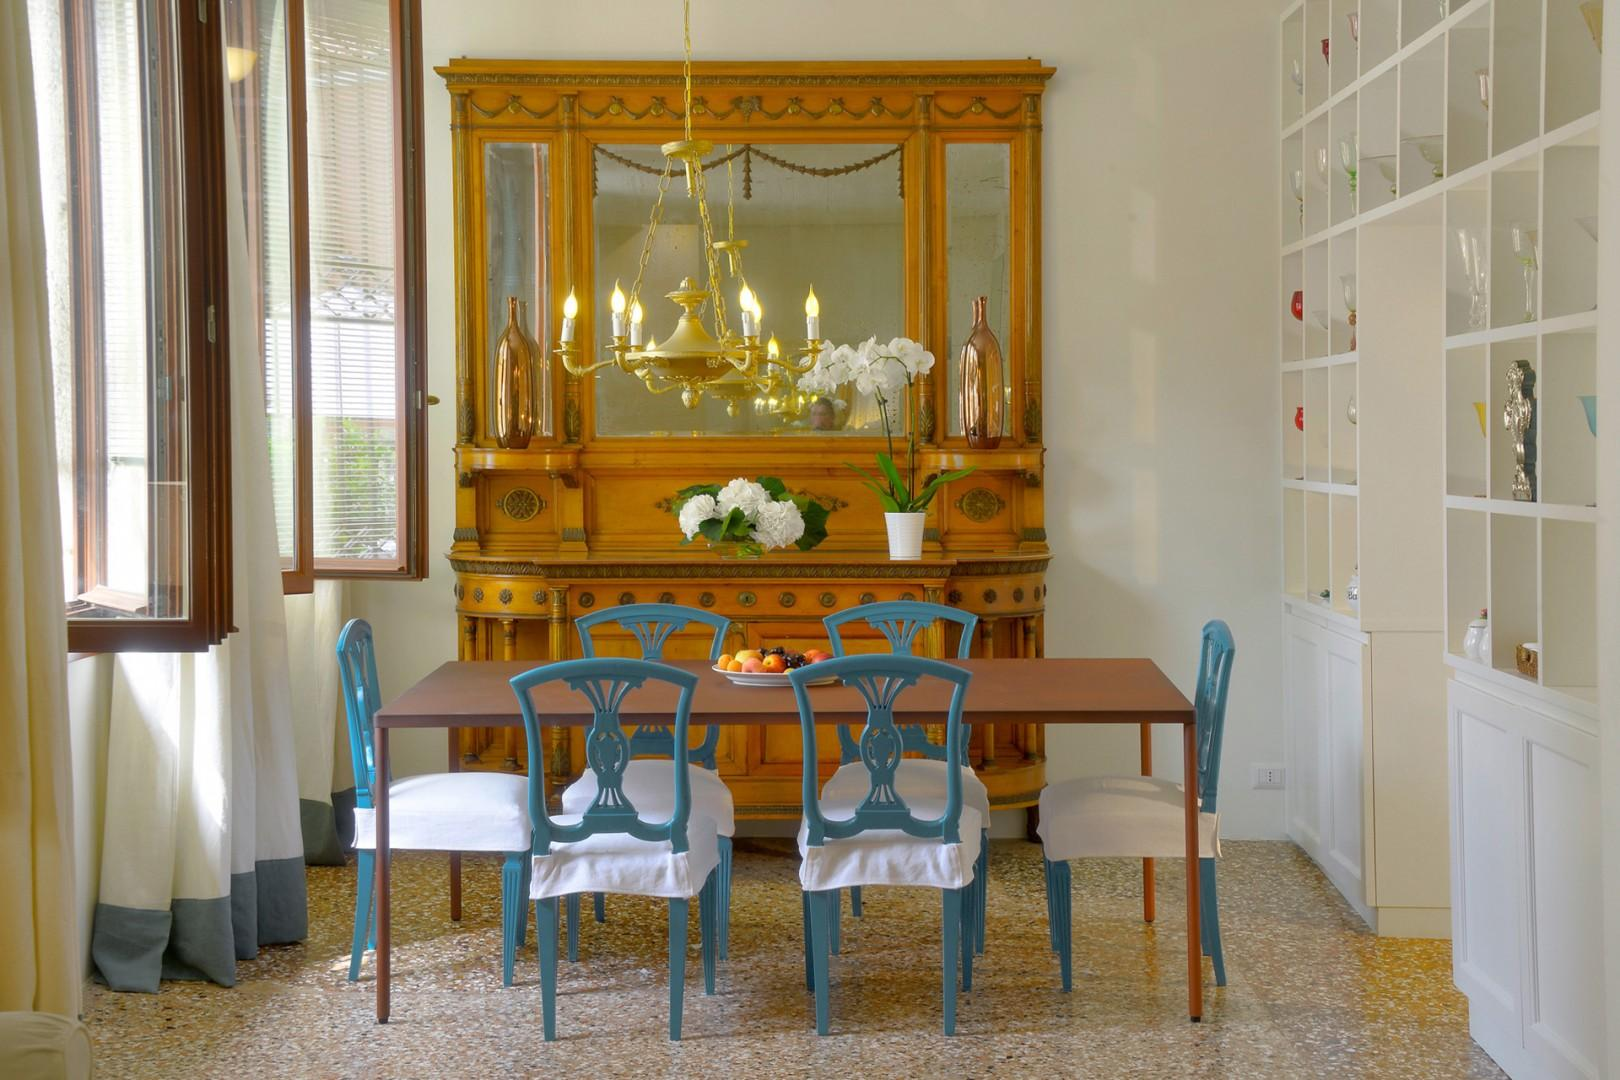 The dining room adjoins the living room with a gorgeous antique sideboard.